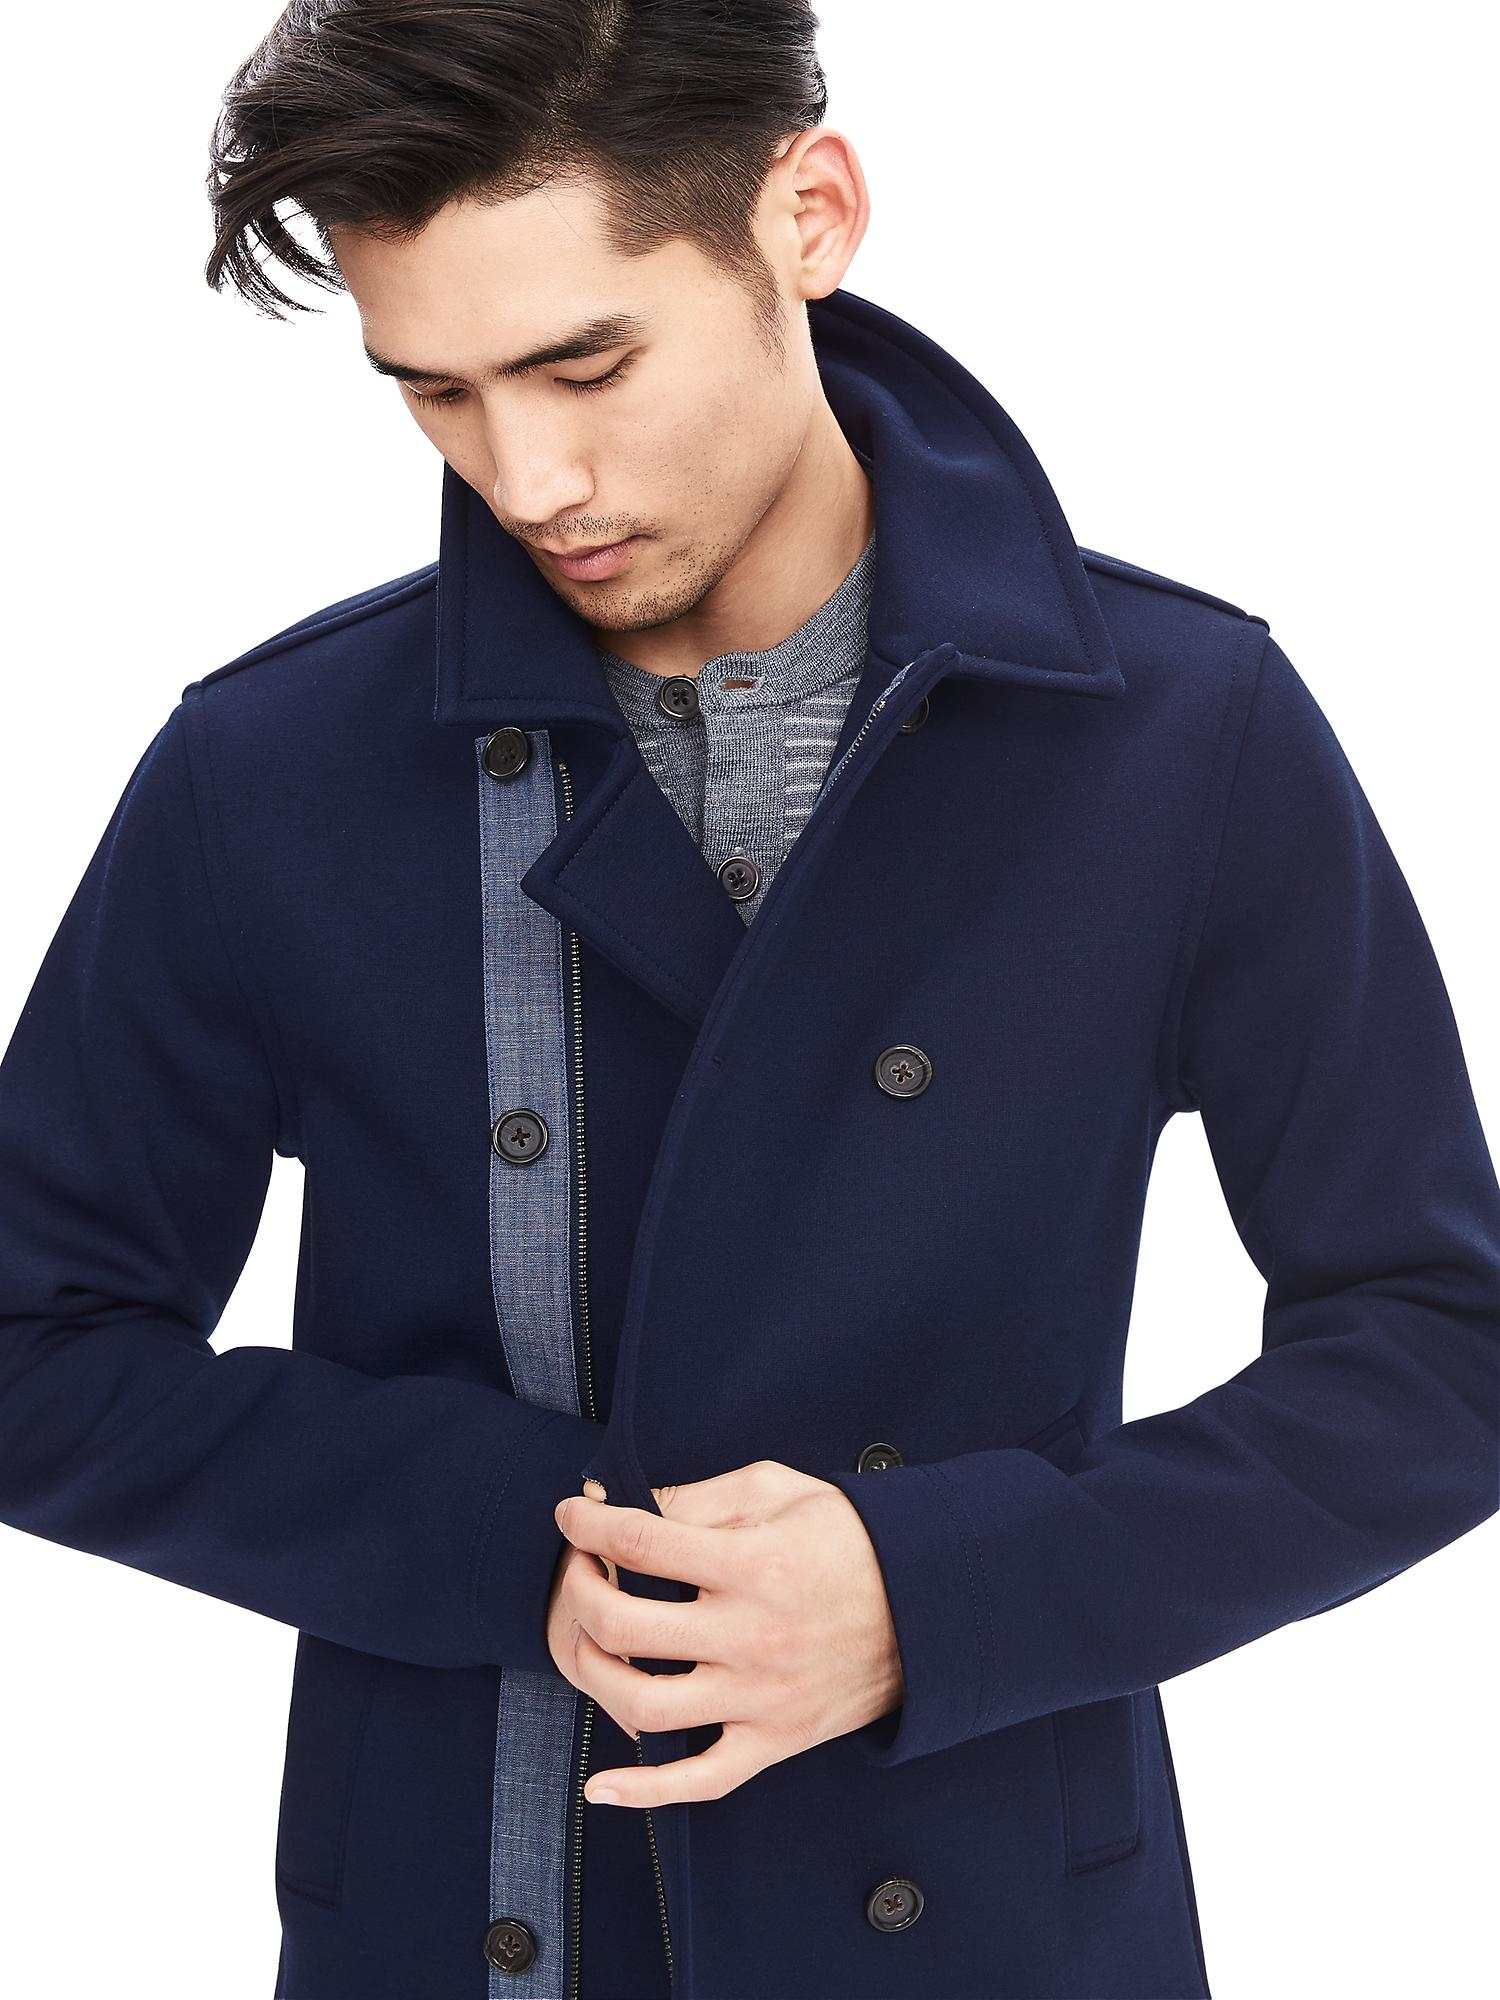 Mens Grey Pea Coat Canada - Tradingbasis